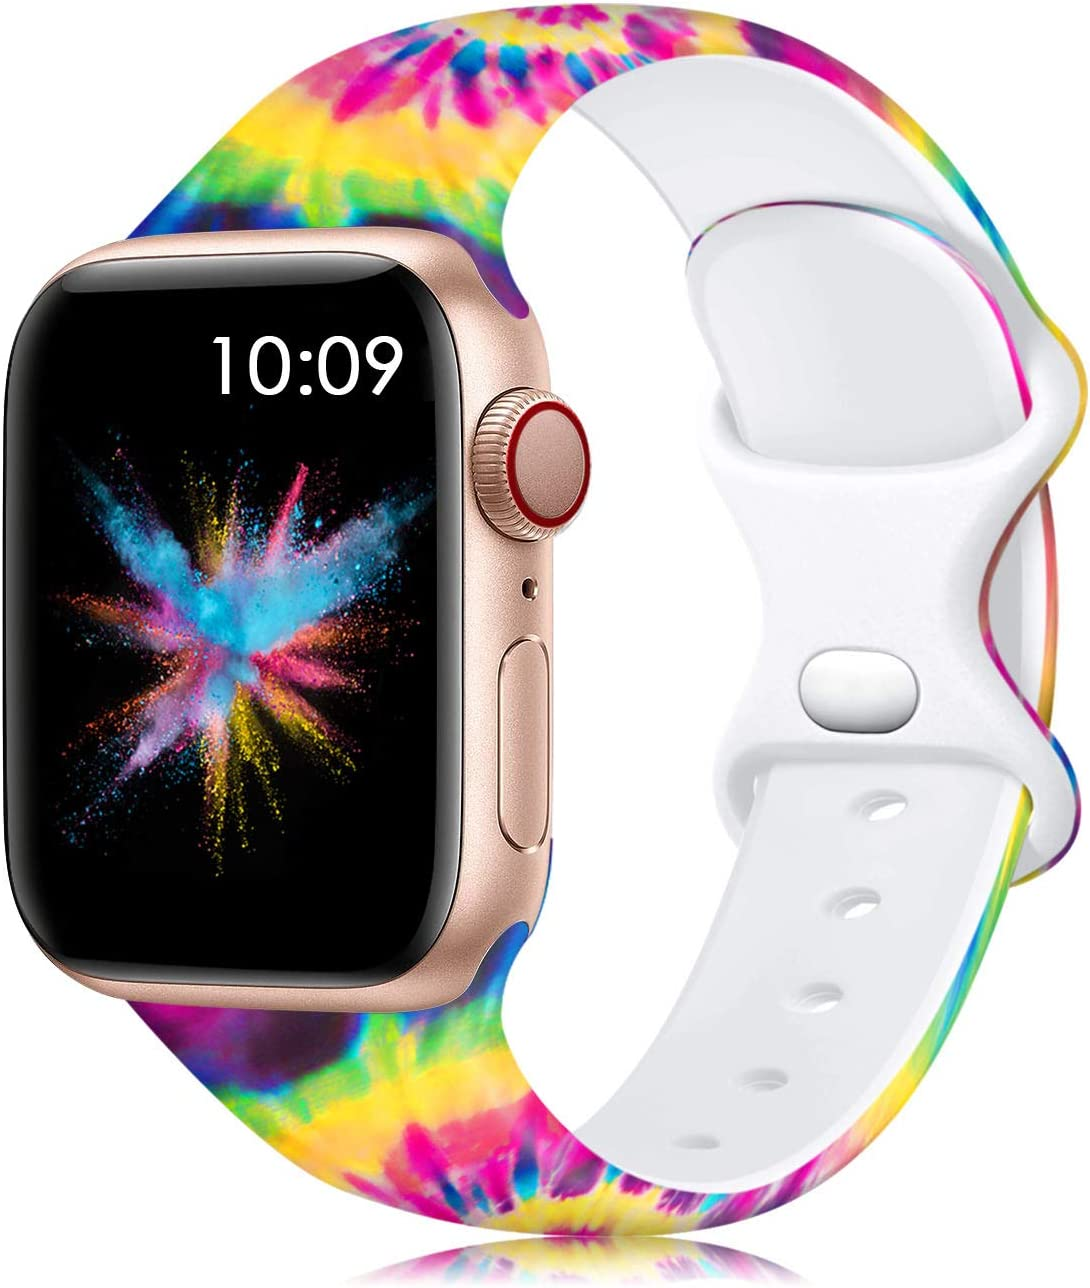 Lerobo Band Compatible with Apple Watch Bands SE 40mm 38mm for Women Men, Silicone Fancy Pattern Printed Replacement Band for Apple Watch SE Series 6 Series 5 Serise 4 Serise 3 2 1, Tie Dye S/M